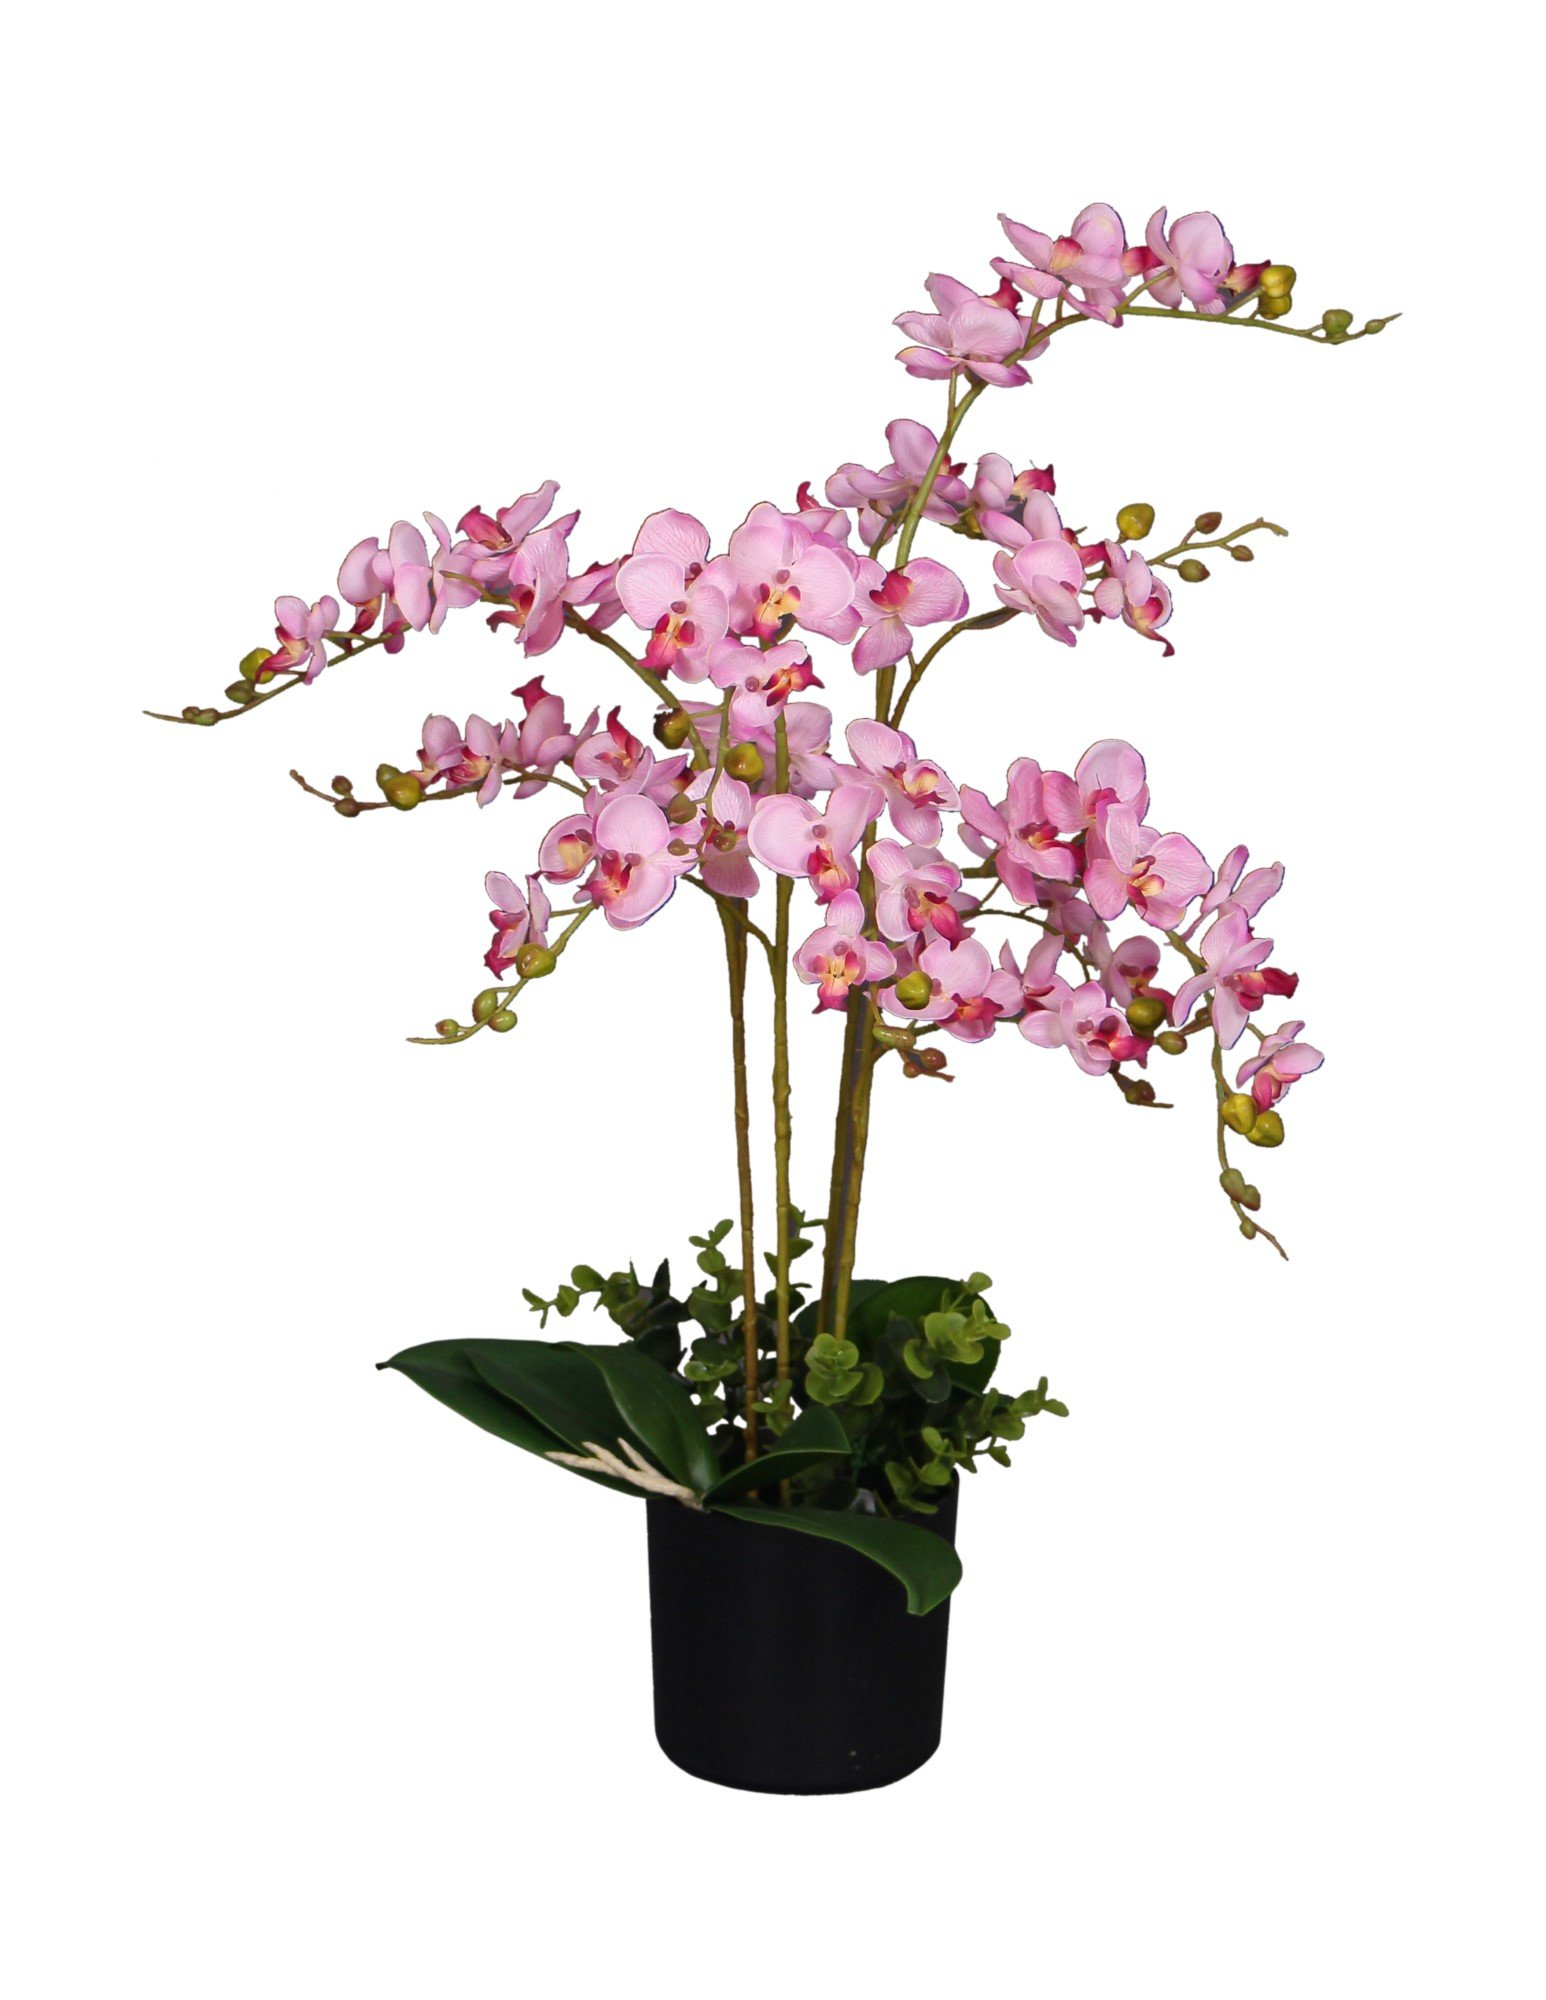 AMERIQUE AMP3611 Unique and Gorgeous Pink Orchid Artificial Silk Flower Plant, with Nursery Pot, Feel Real Technology, Super Quality, 2.5', Pink and Emerald Green